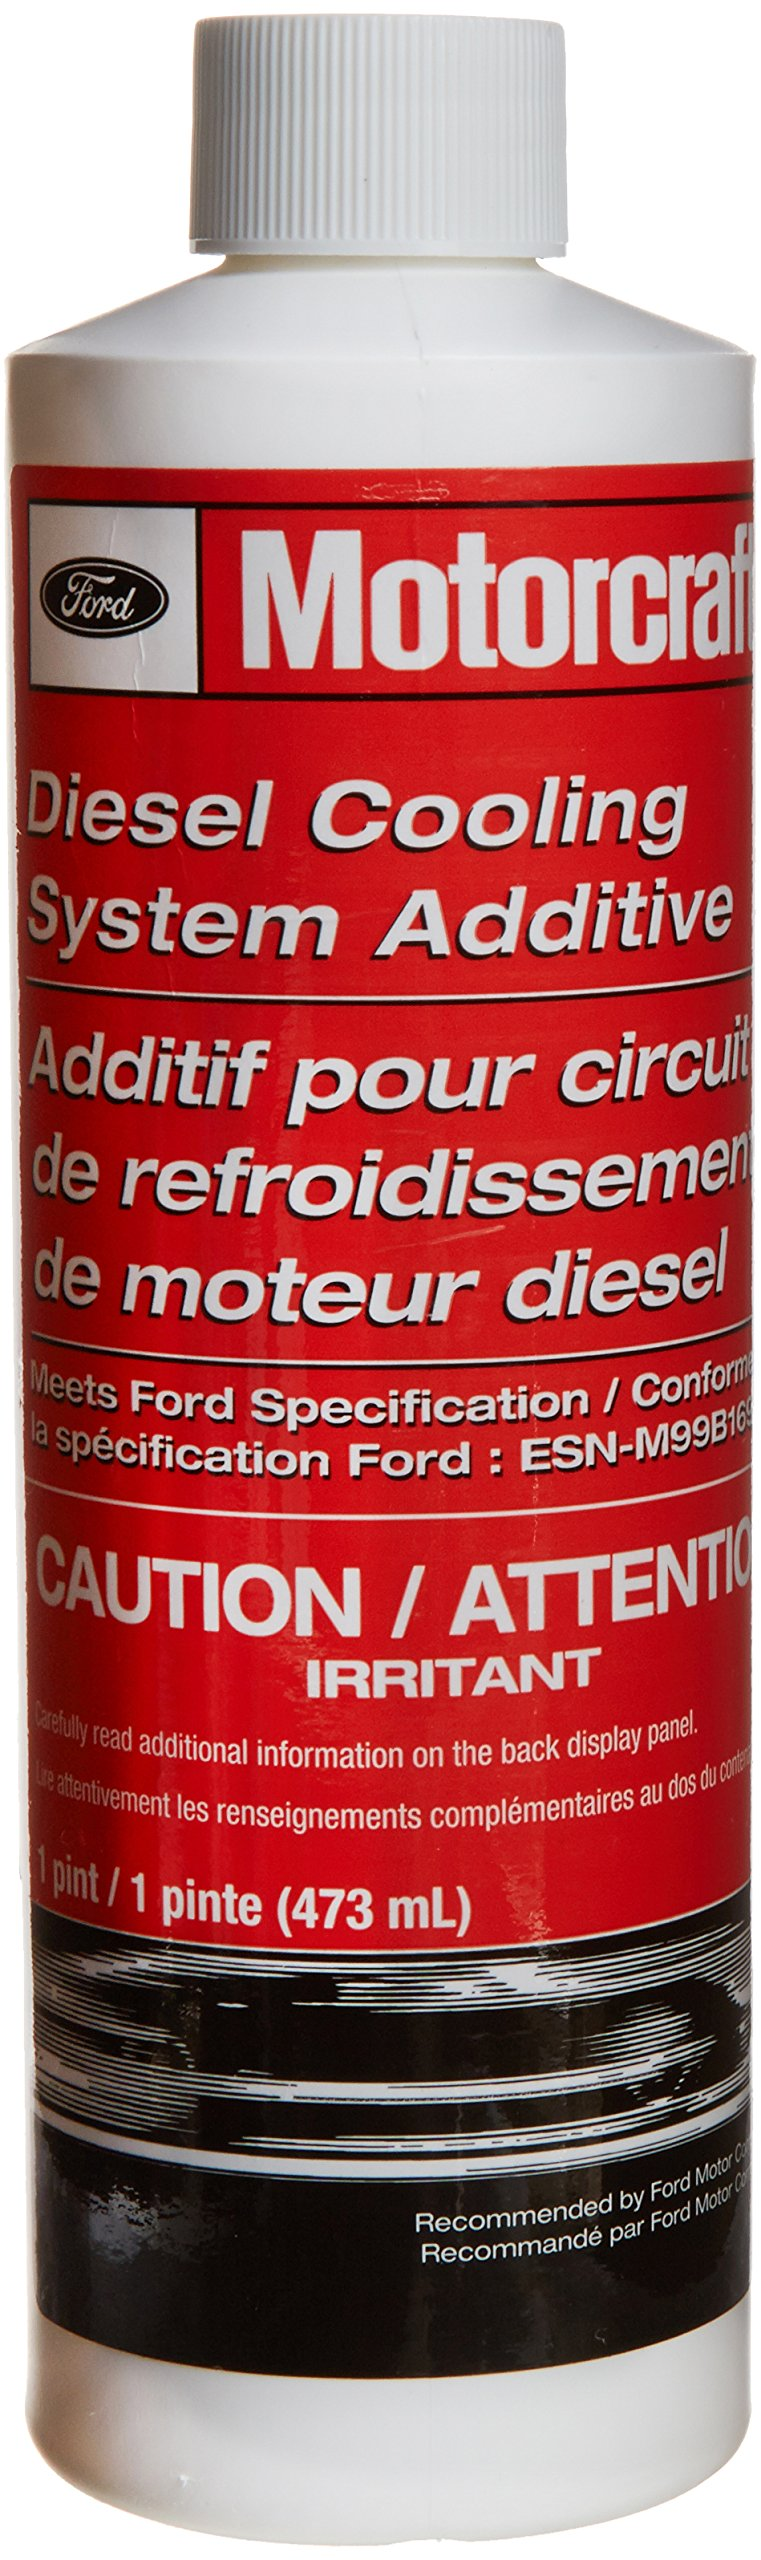 Genuine Ford Fluid VC-8 Diesel Cooling System Additive - 16 oz. by Ford